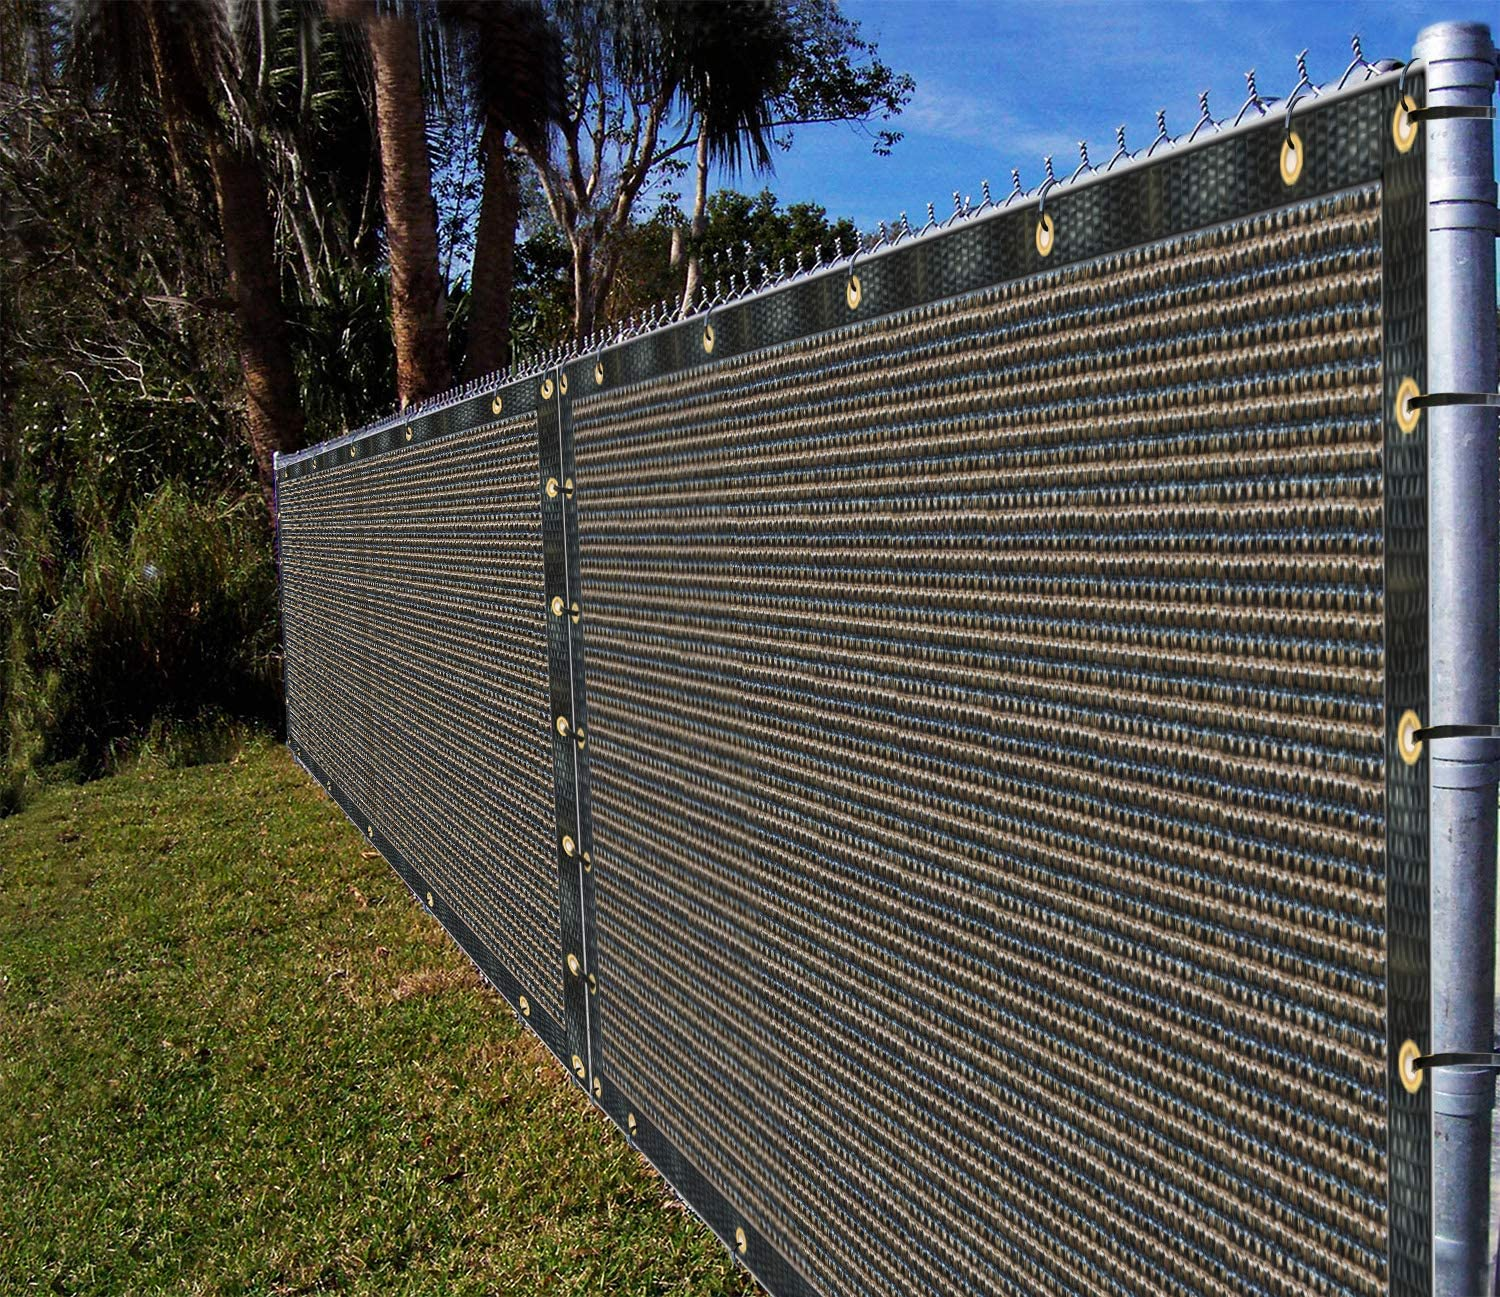 Ifenceview 8'x3' to 8'x50' Brown Shade Cloth/Fence Privacy Screen Fabric Mesh Net for Construction Site, Yard, Driveway, Garden, Railing, Canopy, Awning 160 GSM UV Protection (8' x 8')